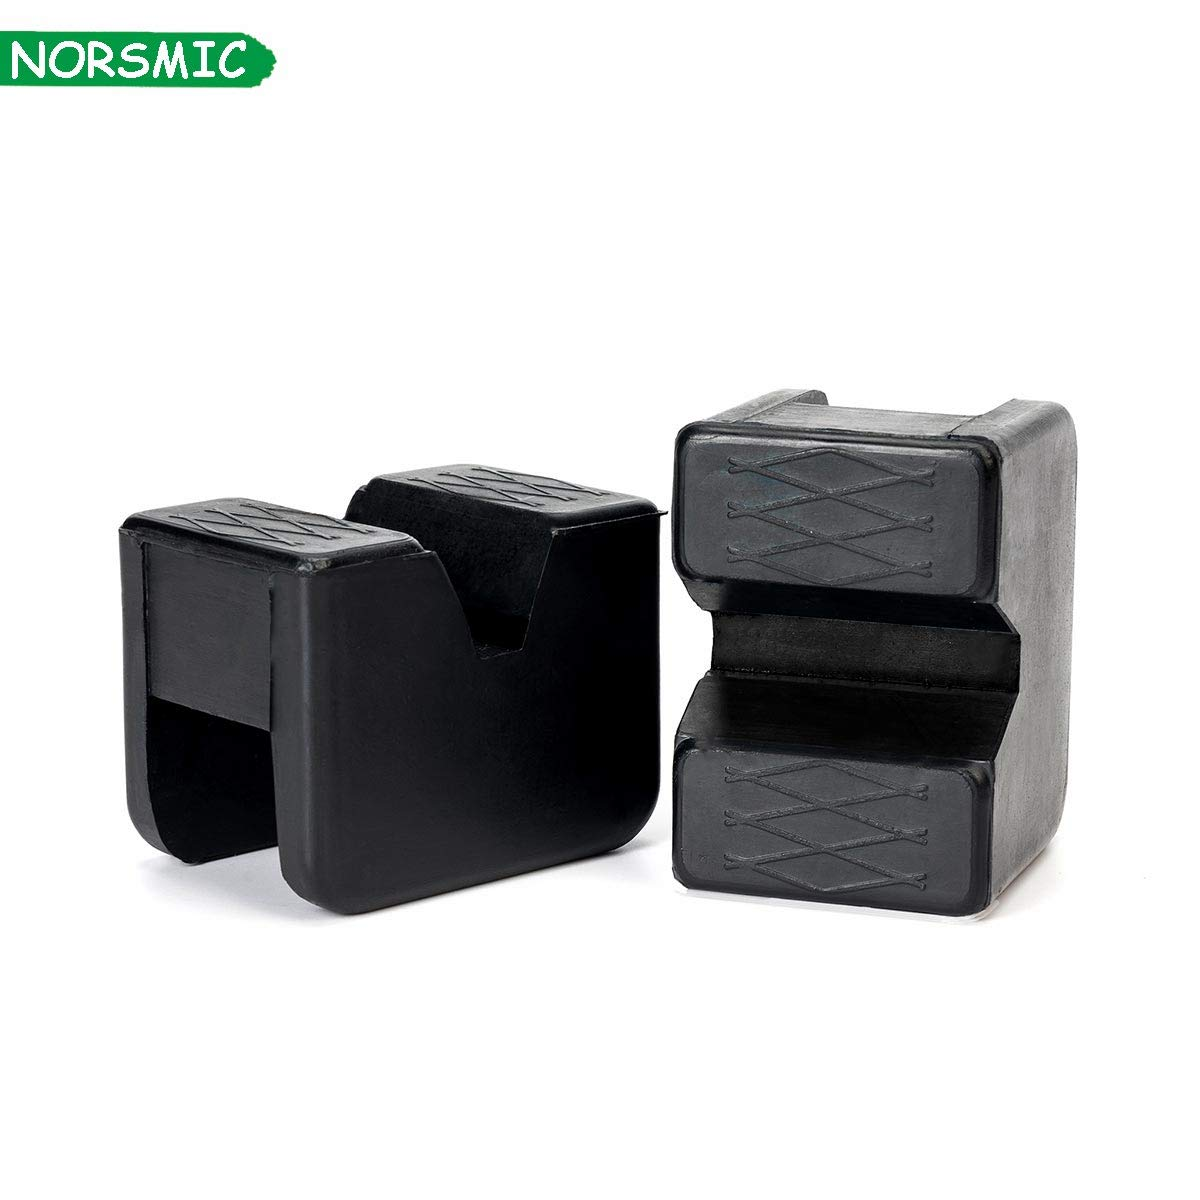 Norsmic Jack Stand Rubber Pad Slotted 2-Pack Dense Rubber Slip Oil Resistant 2-3 Ton Universal Frame Rail Guard Pinch Weld Adapter Cover Protector